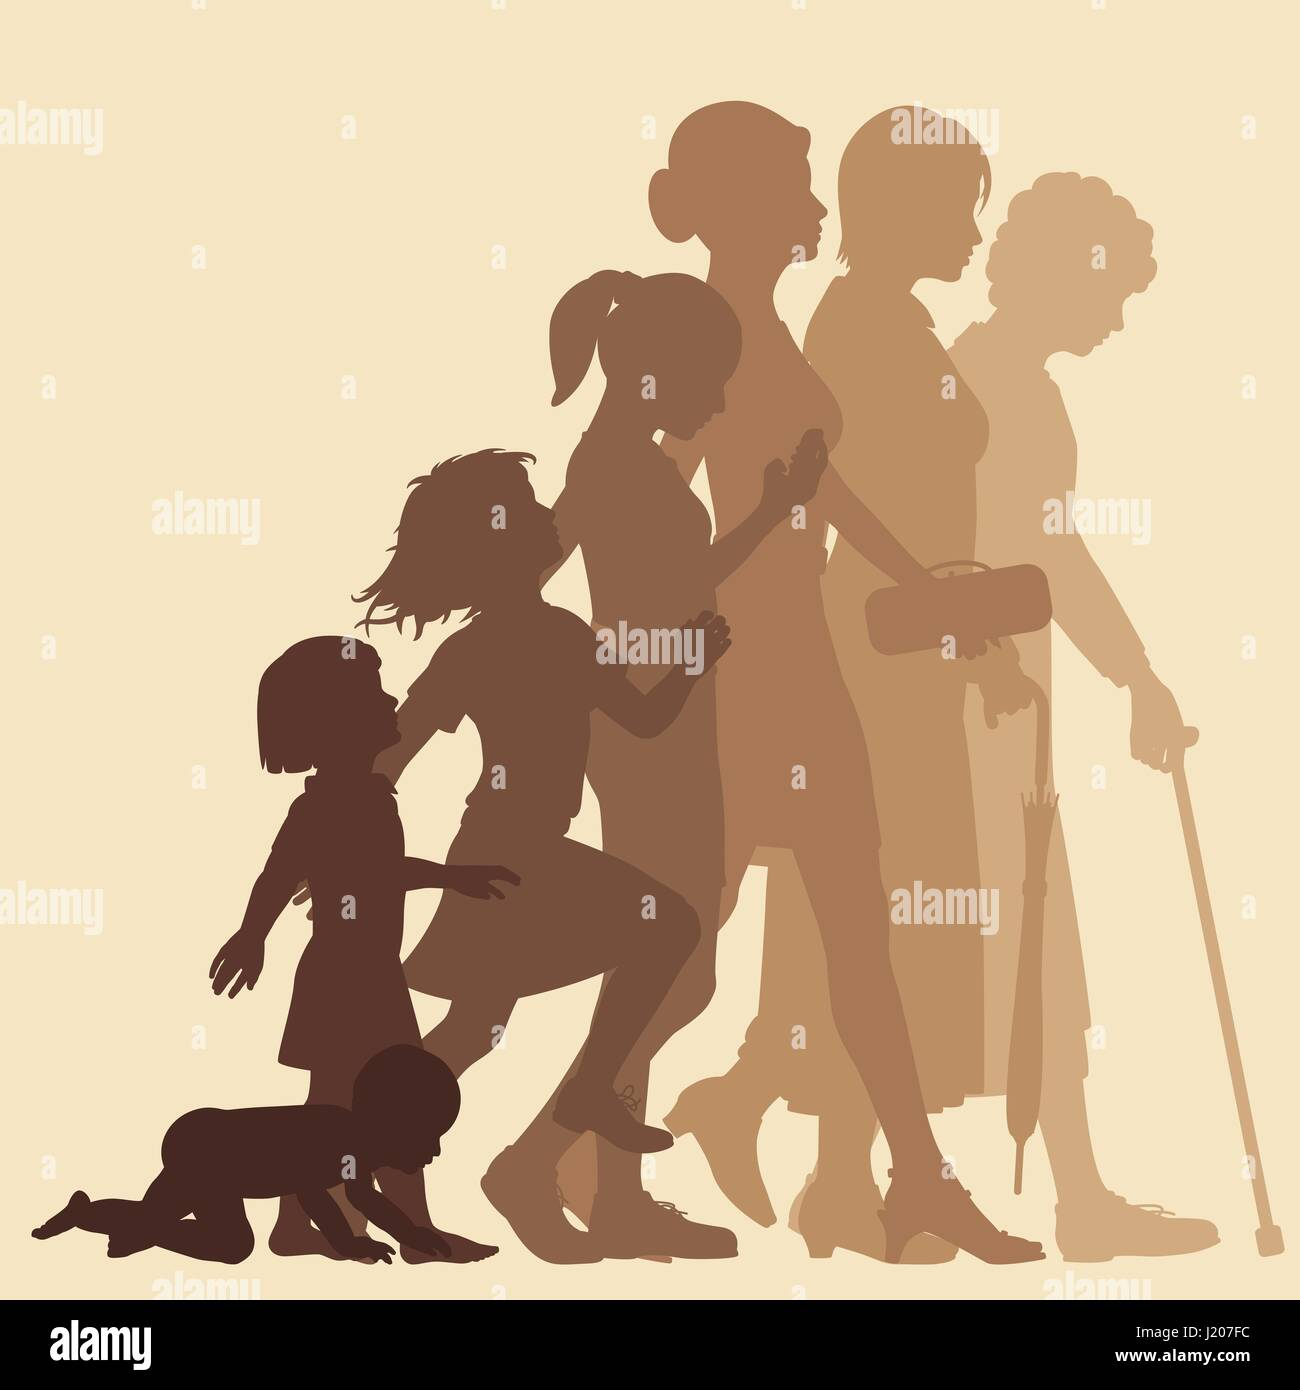 Editable vector silhouette sequence of the life stages of a woman with figures as separate objects - Stock Image